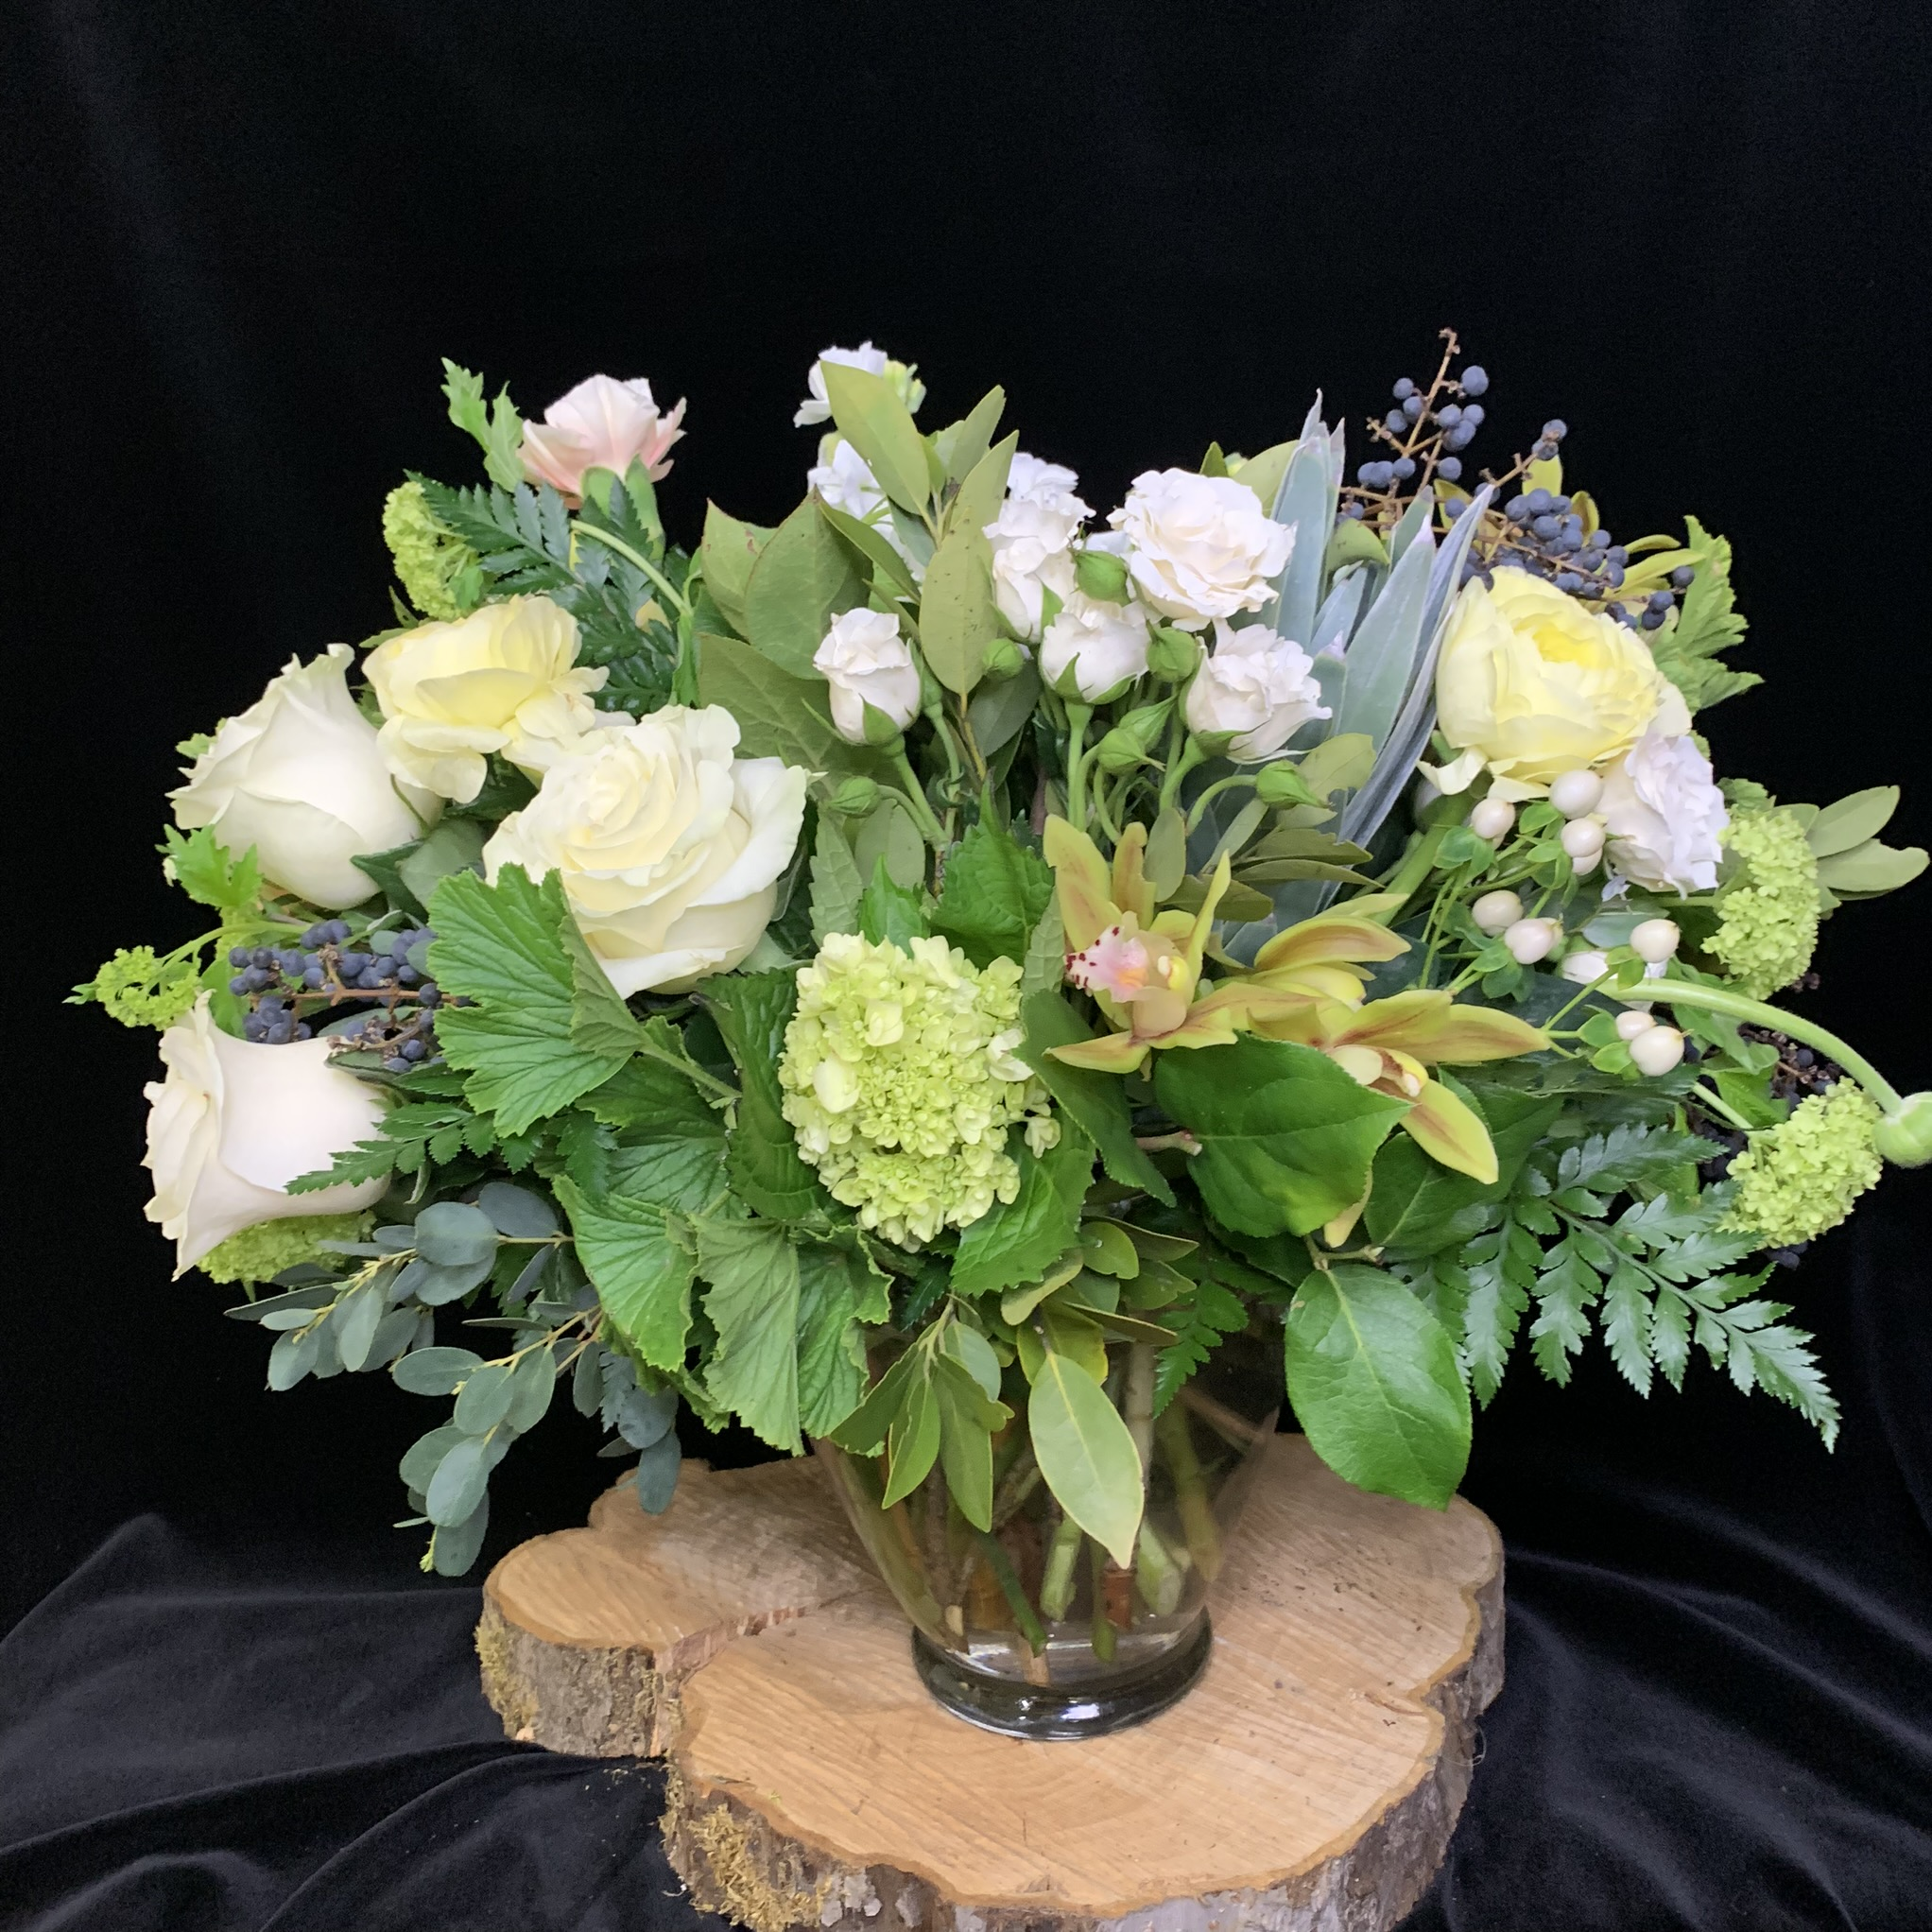 30. Soft lush overflowing bouquet in neutral creams and greens